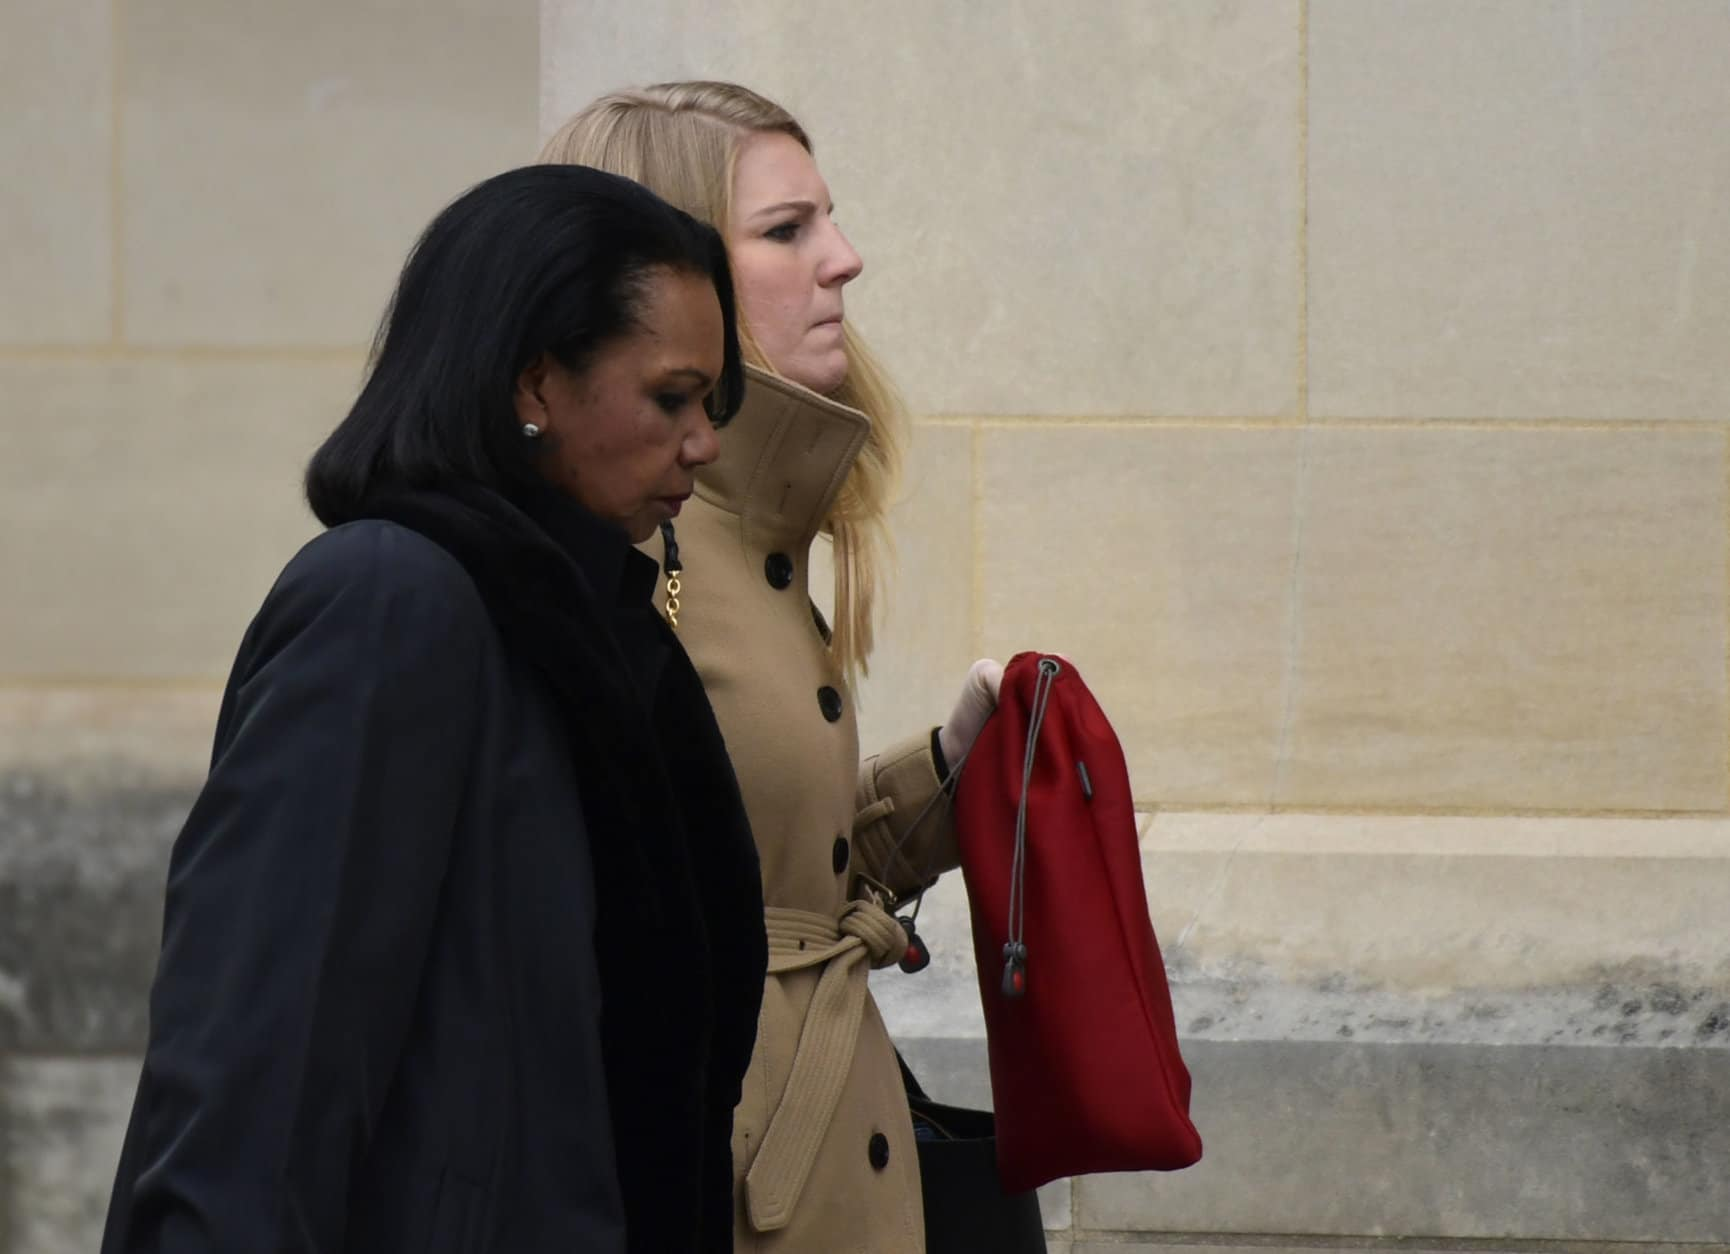 Former Secretary of State Condoleezza Rice, left, arrives for the State Funeral of former President George H.W. Bush at the National Cathedral in Washington, Wednesday, Dec. 5, 2018. (AP Photo/Susan Walsh)